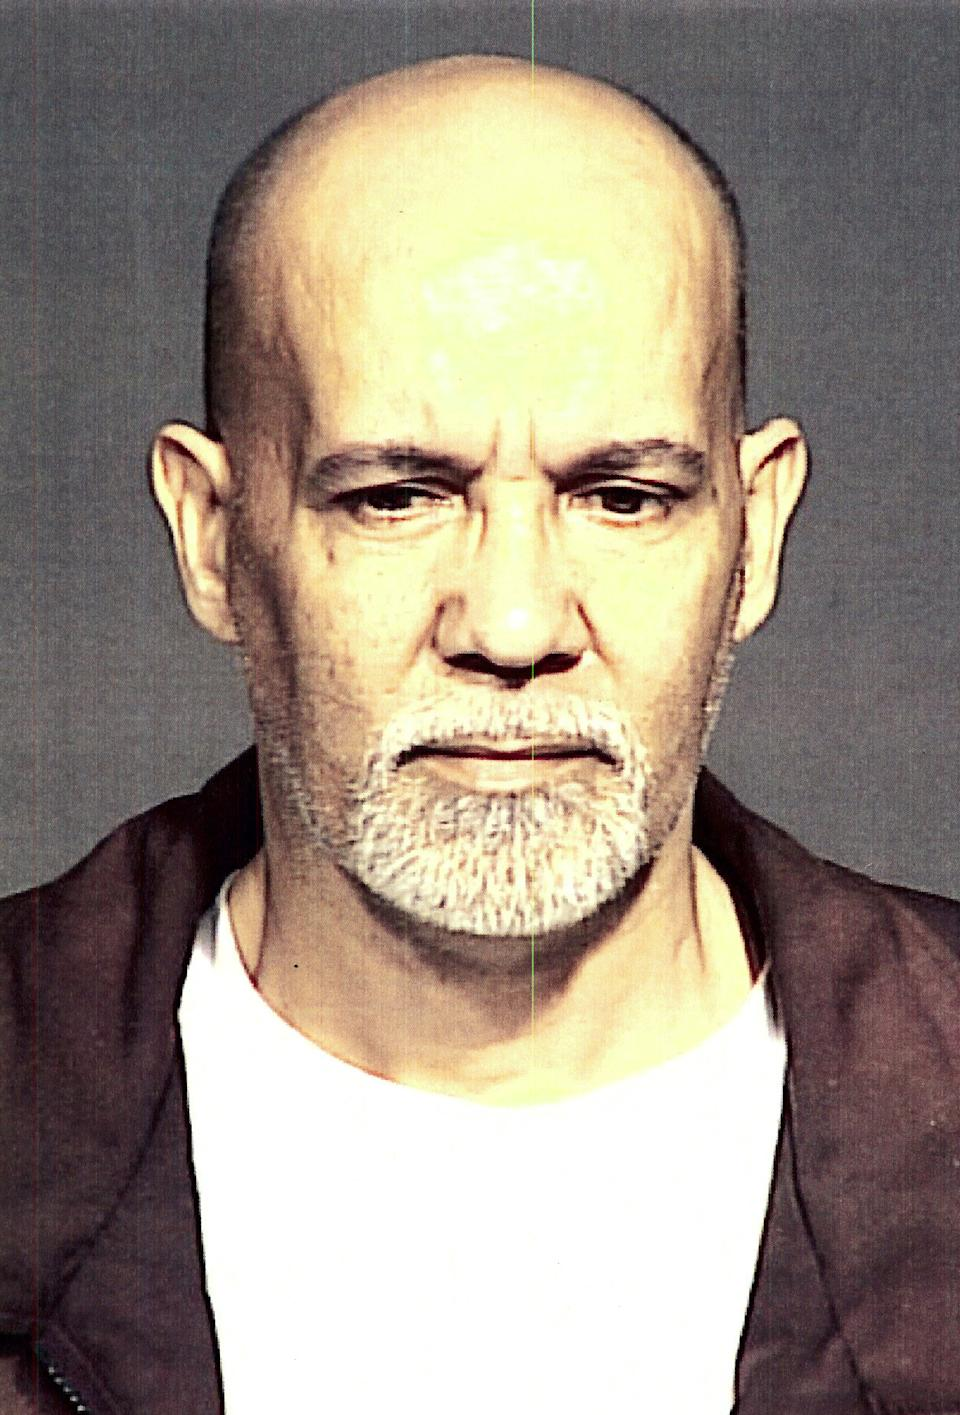 FILE - In this May 2012 file photo obtained by The Associated Press, murder suspect Pedro Hernandez is shown. Hernandez confessed to the 1979 murder of 6-year-old Etan Patz in New York City. (AP Photo/File)